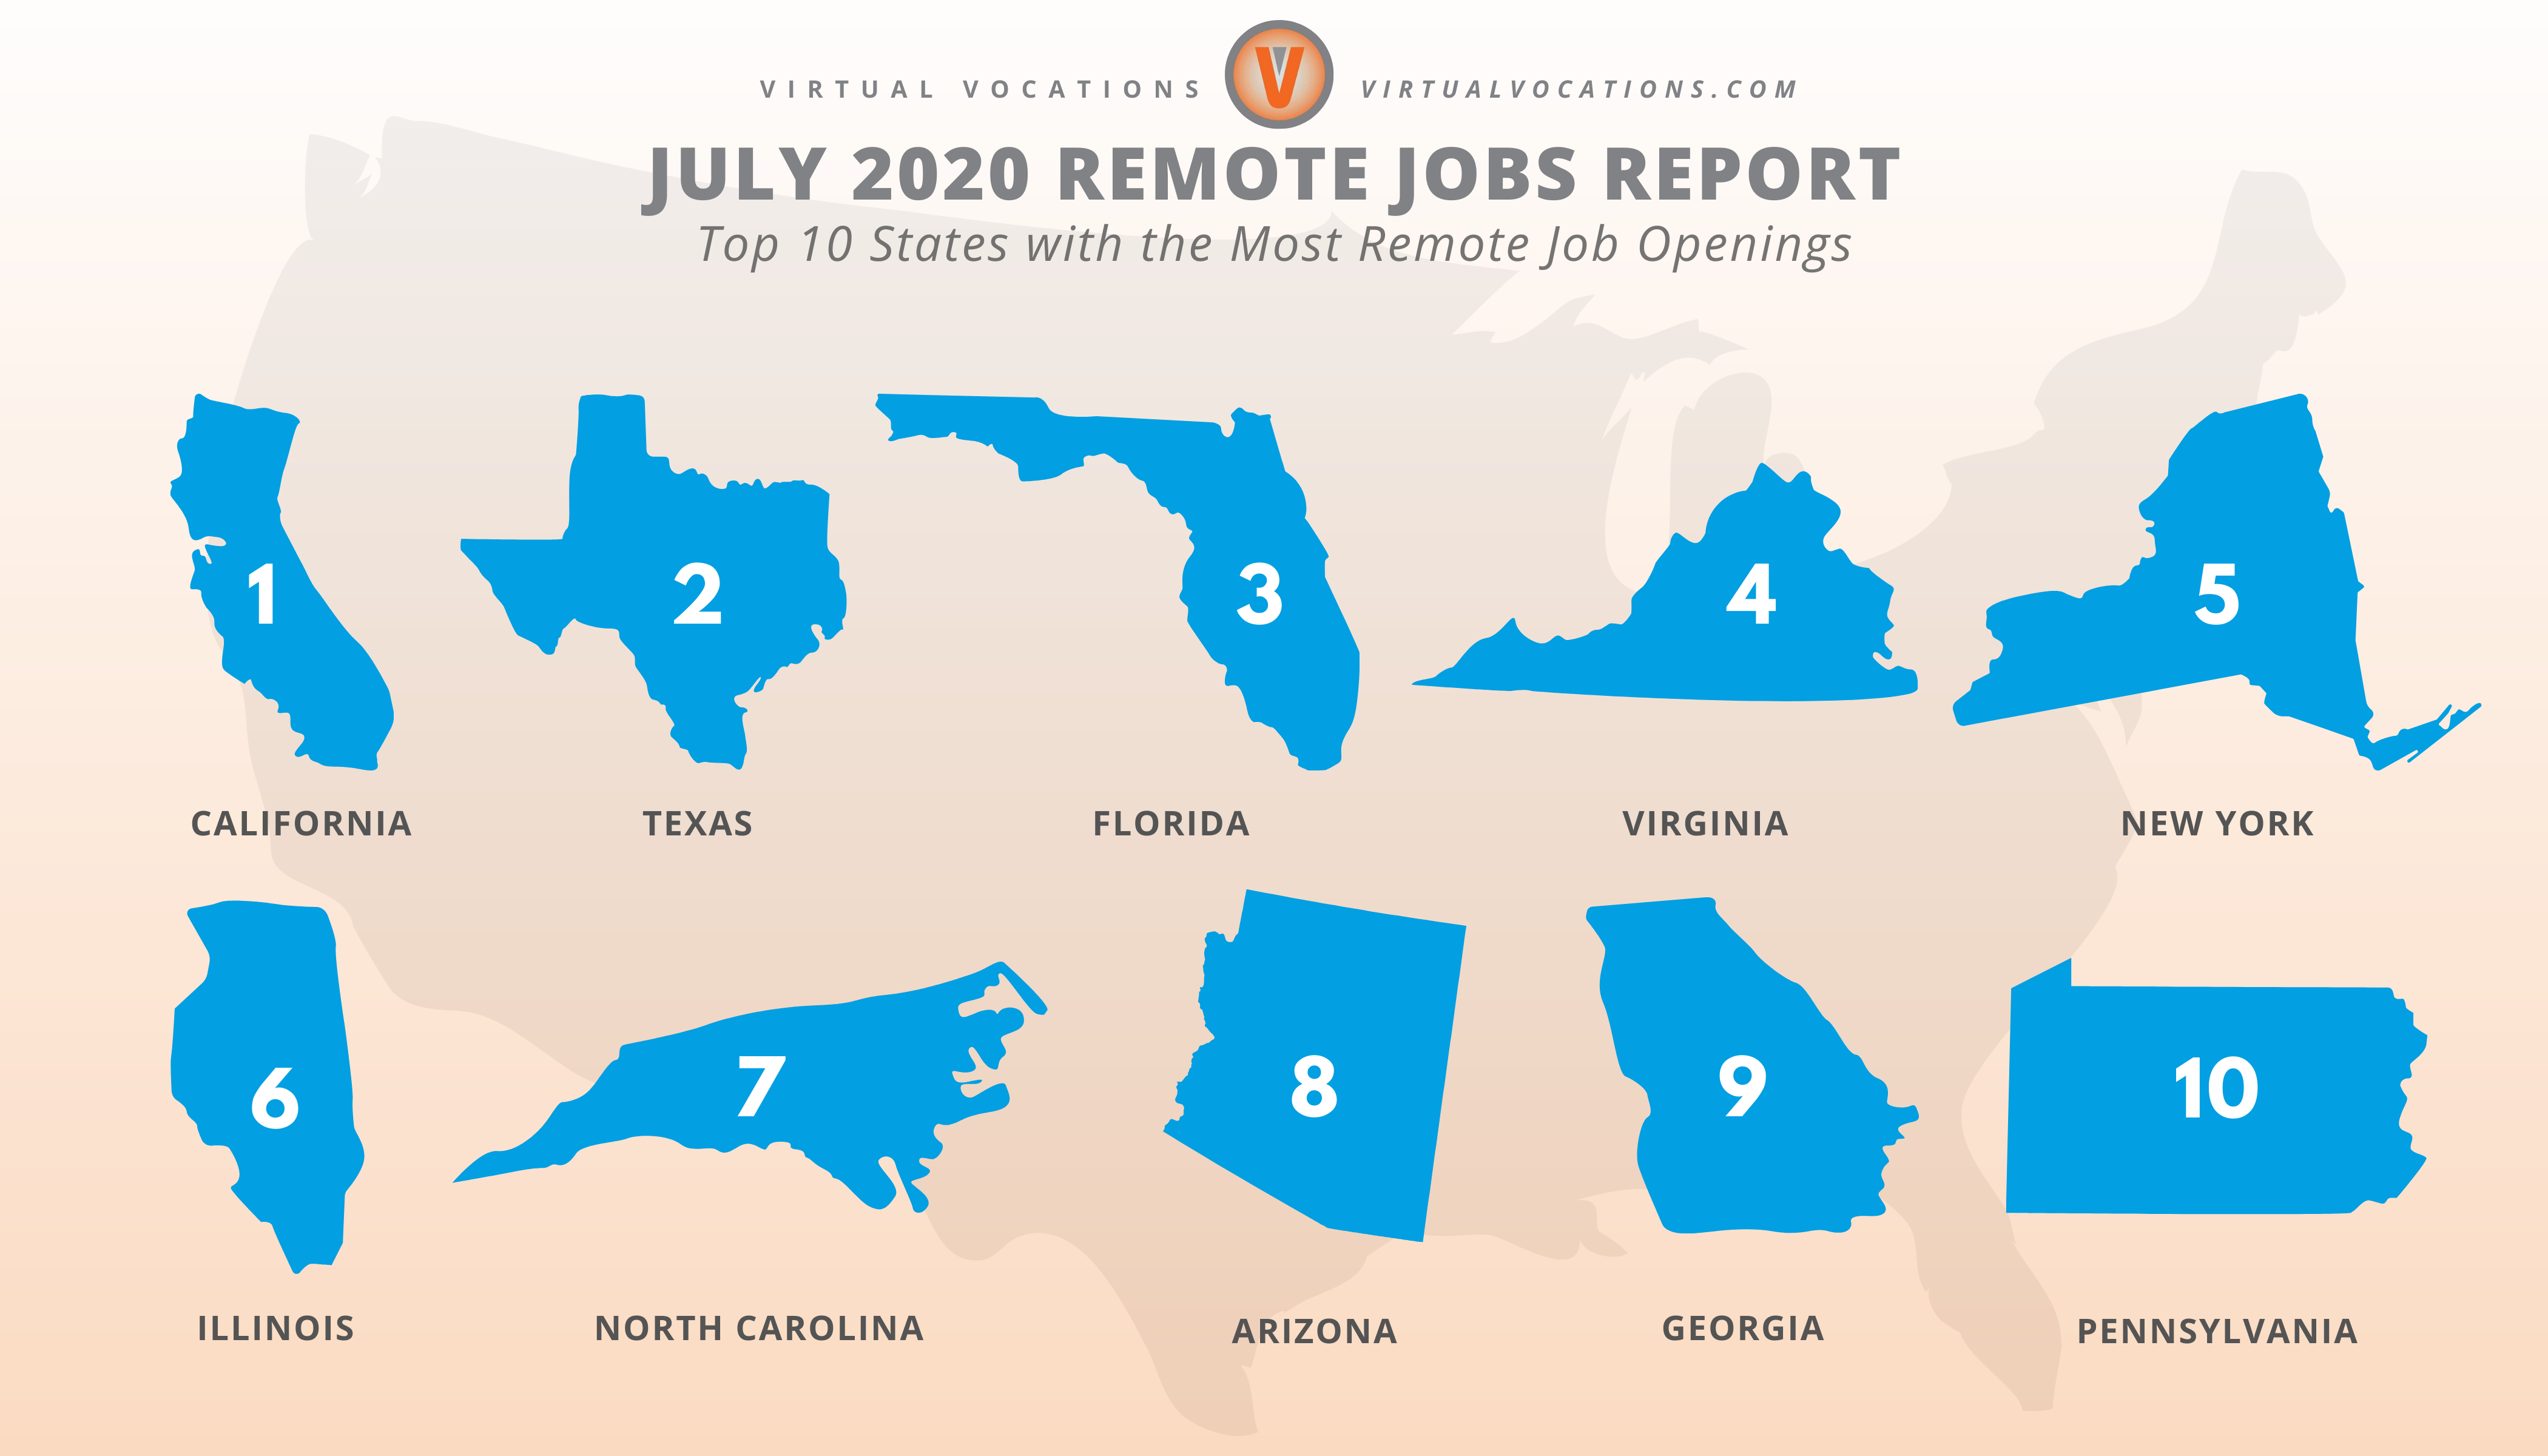 Top 10 States with the Most Remote Job Openings Graph - July 2020 Remote Jobs Report - Virtual Vocations